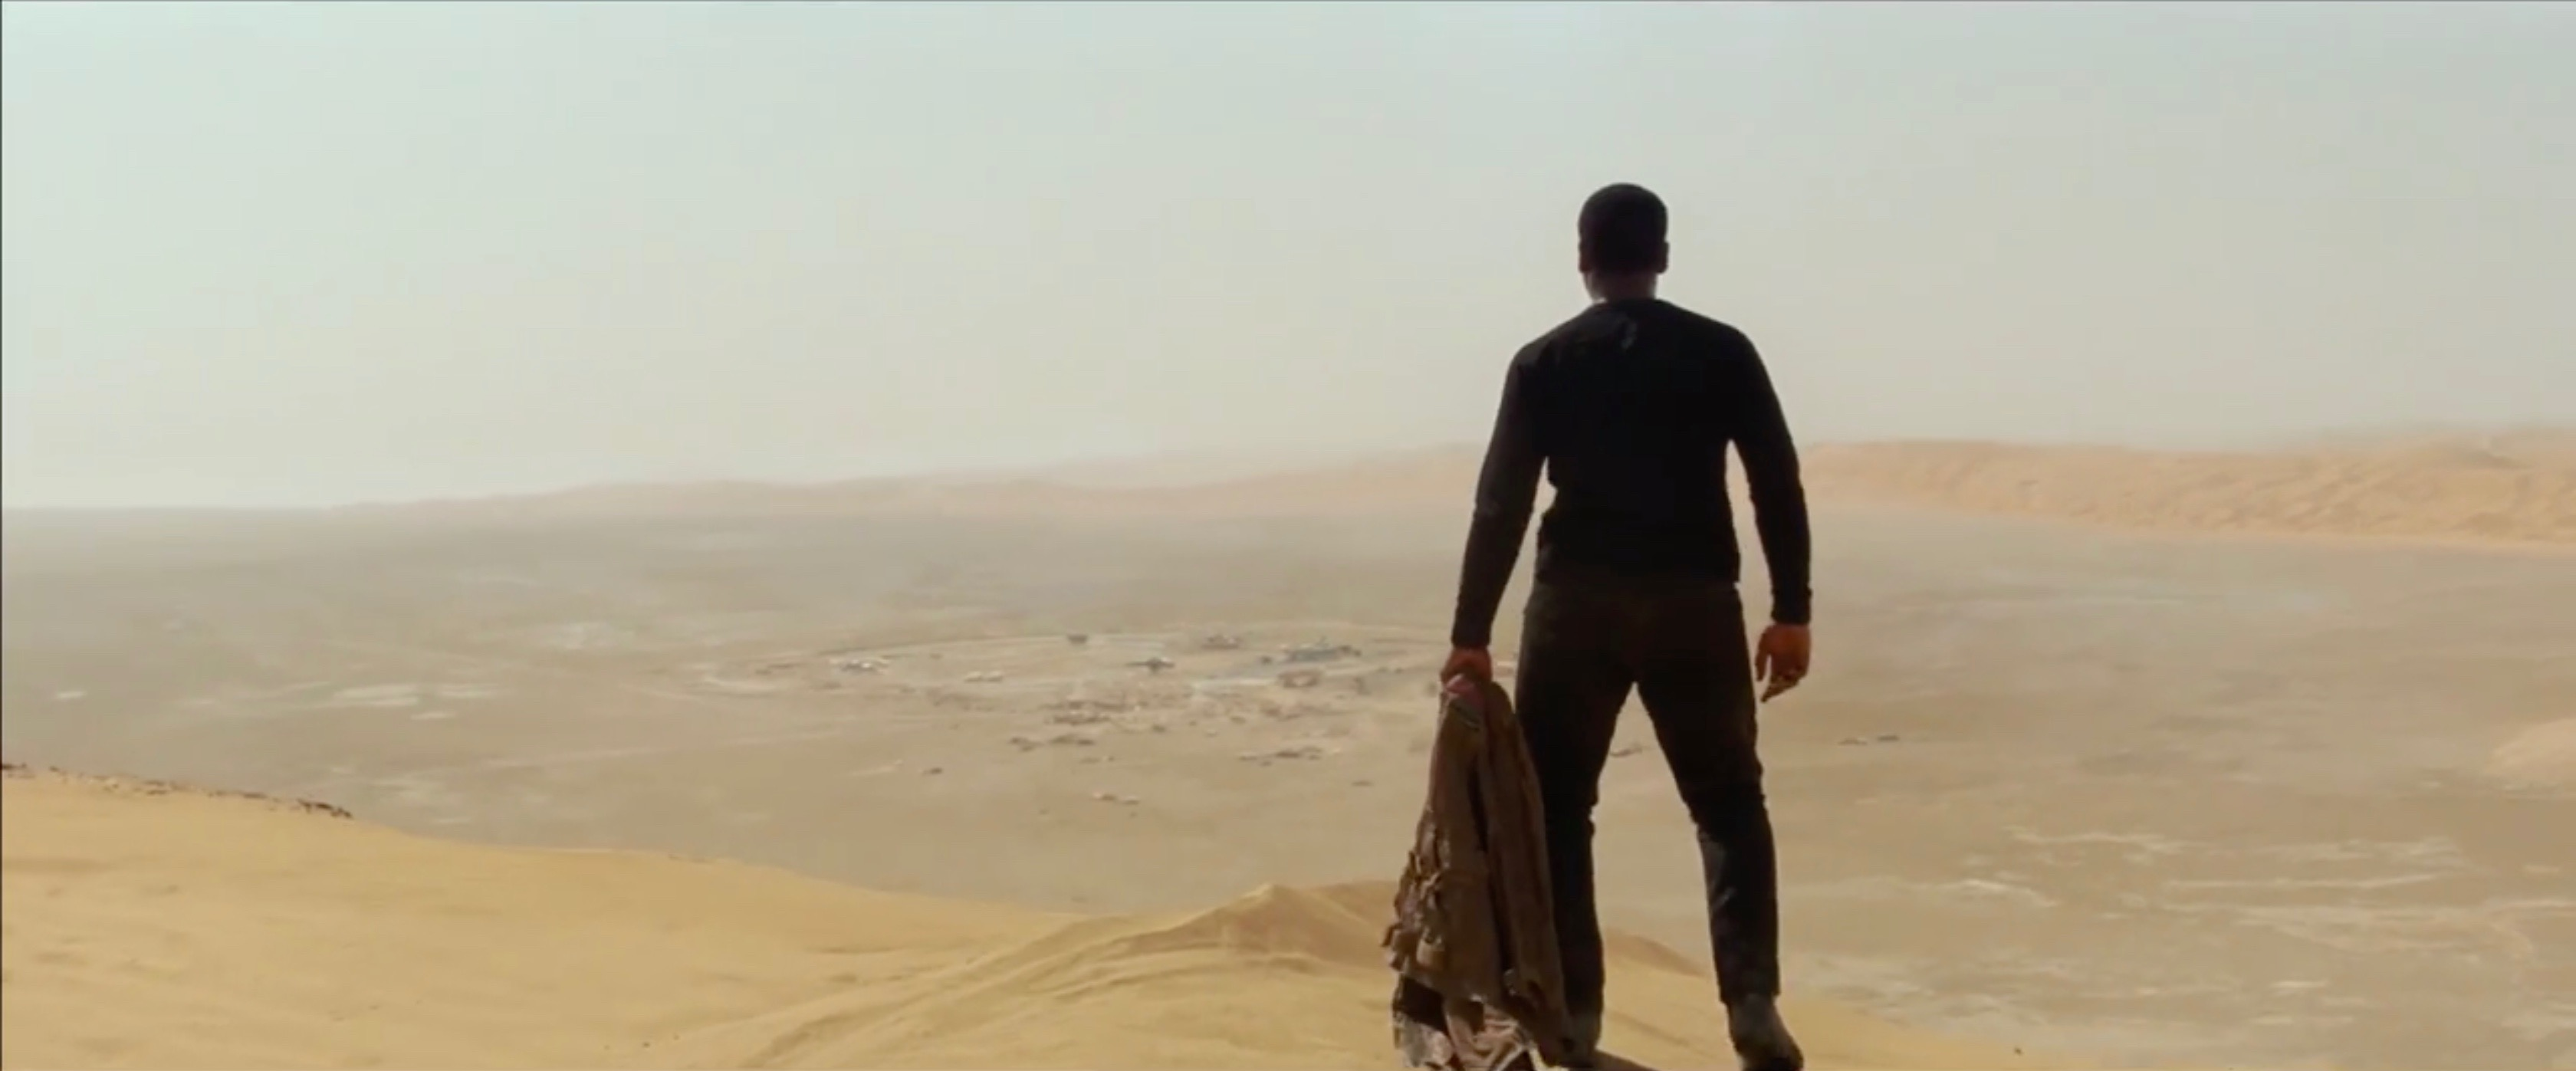 Star Wars VII Trailer Analysis - 4 of 20